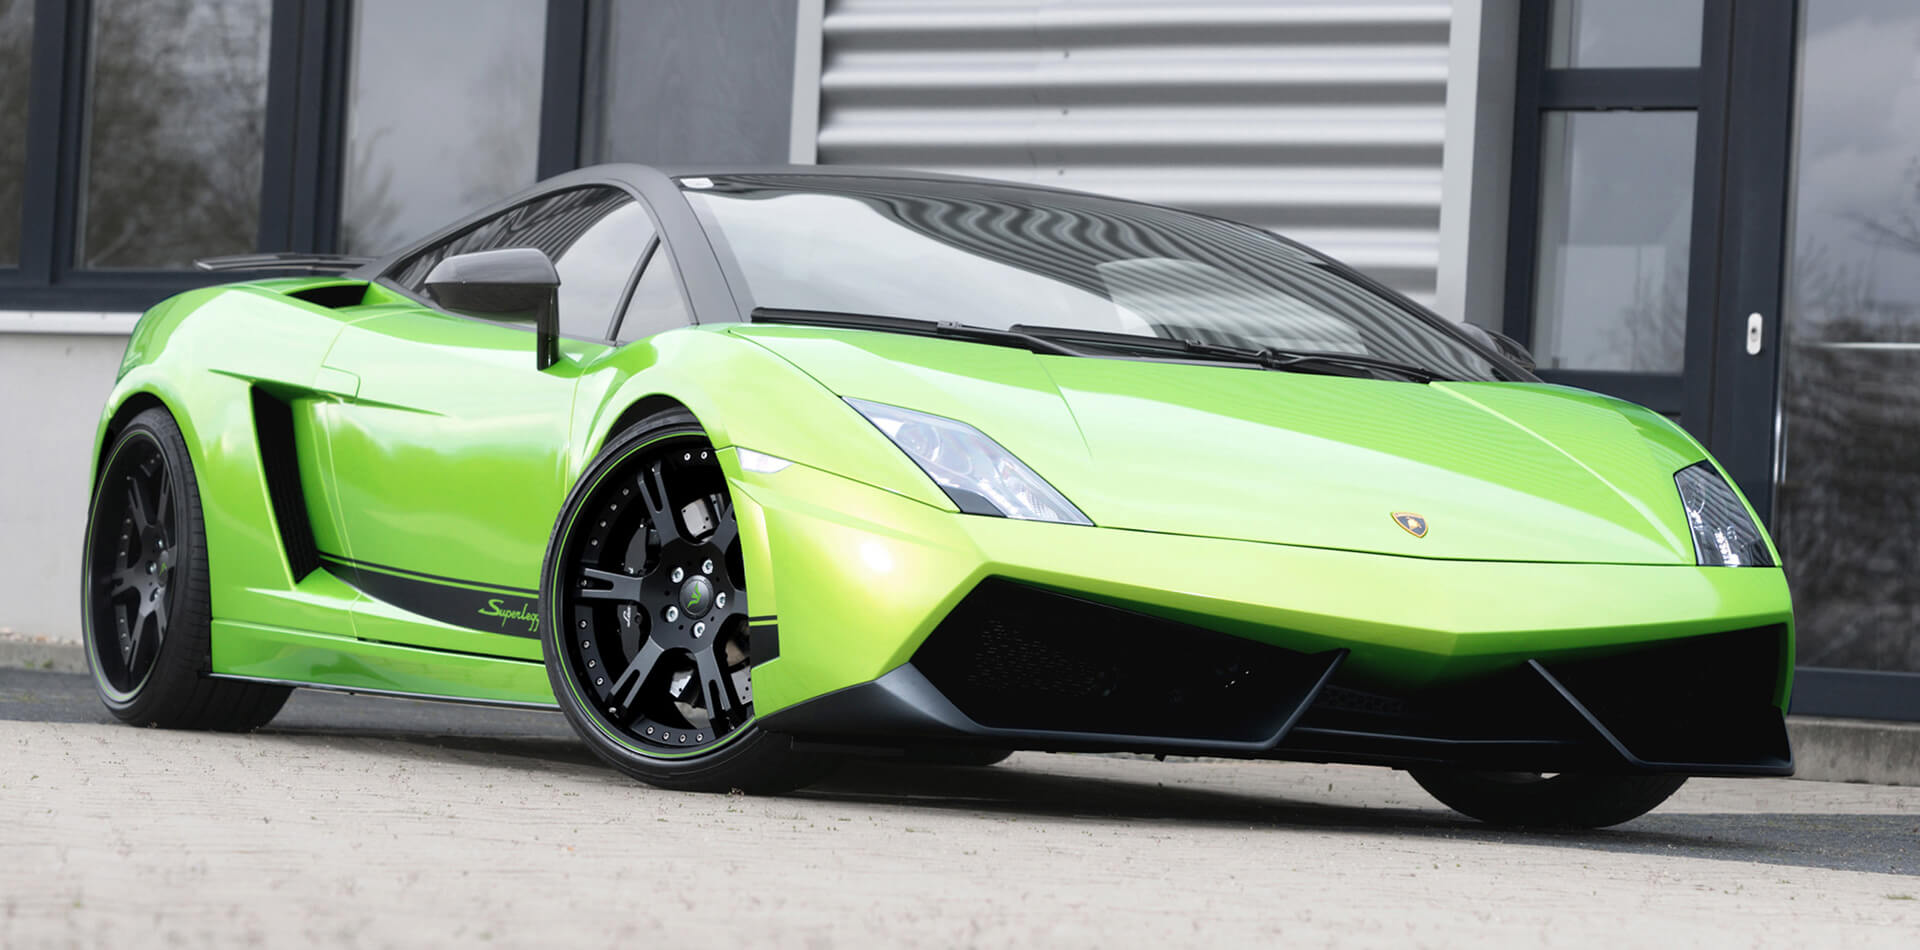 Grün folierter Lamborghini Superleggera by Wheelsandmore Tuning Deutschland